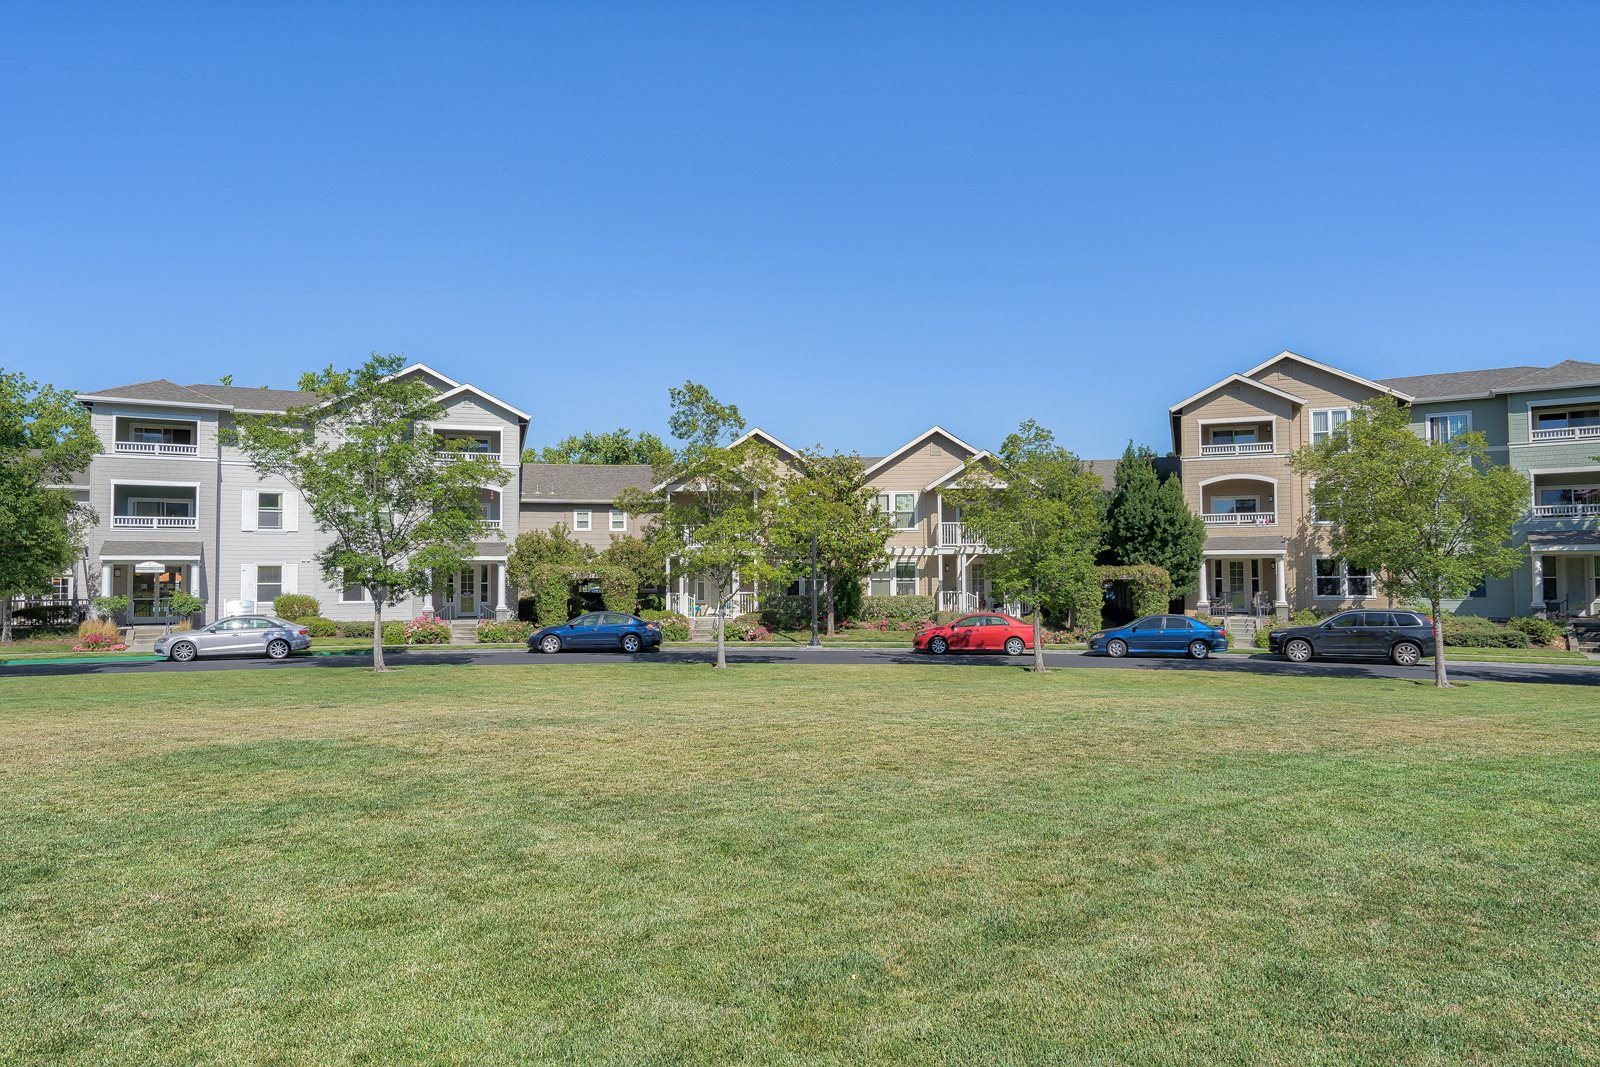 Newly Renovated Apartments with Luxury Amenities at The Kensington, Pleasanton, 94566